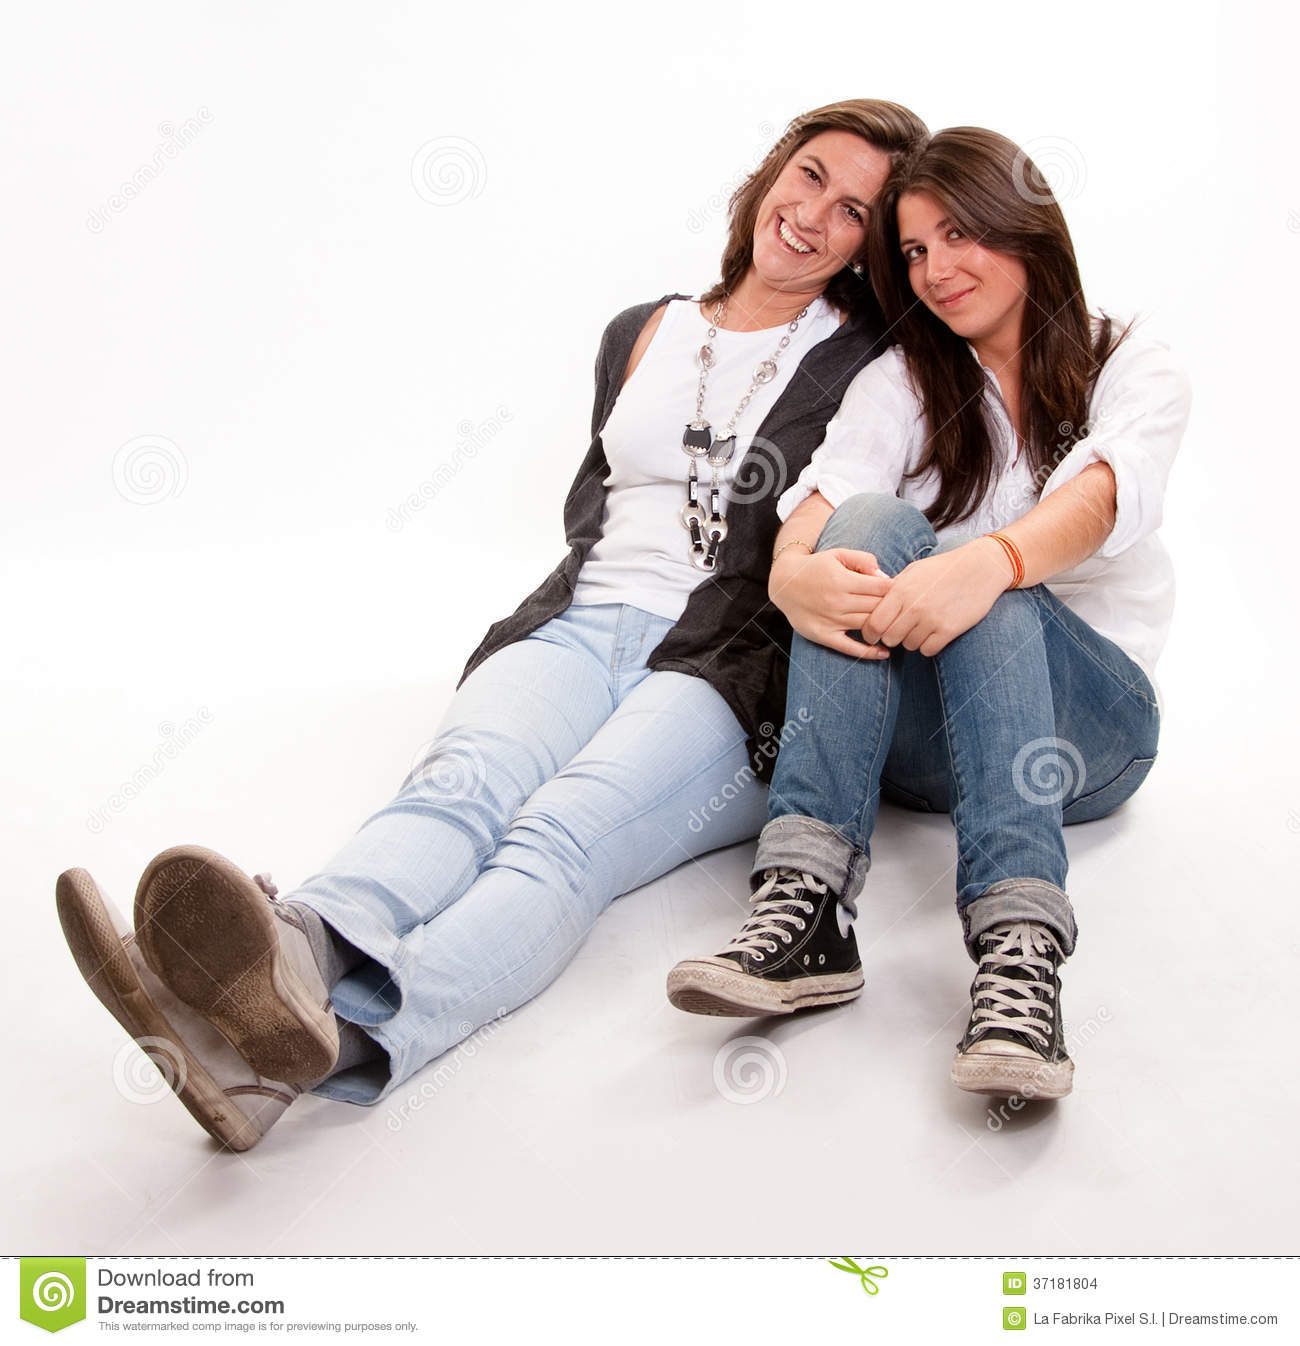 Phrase matchless... mother teen daughter relationships opinion